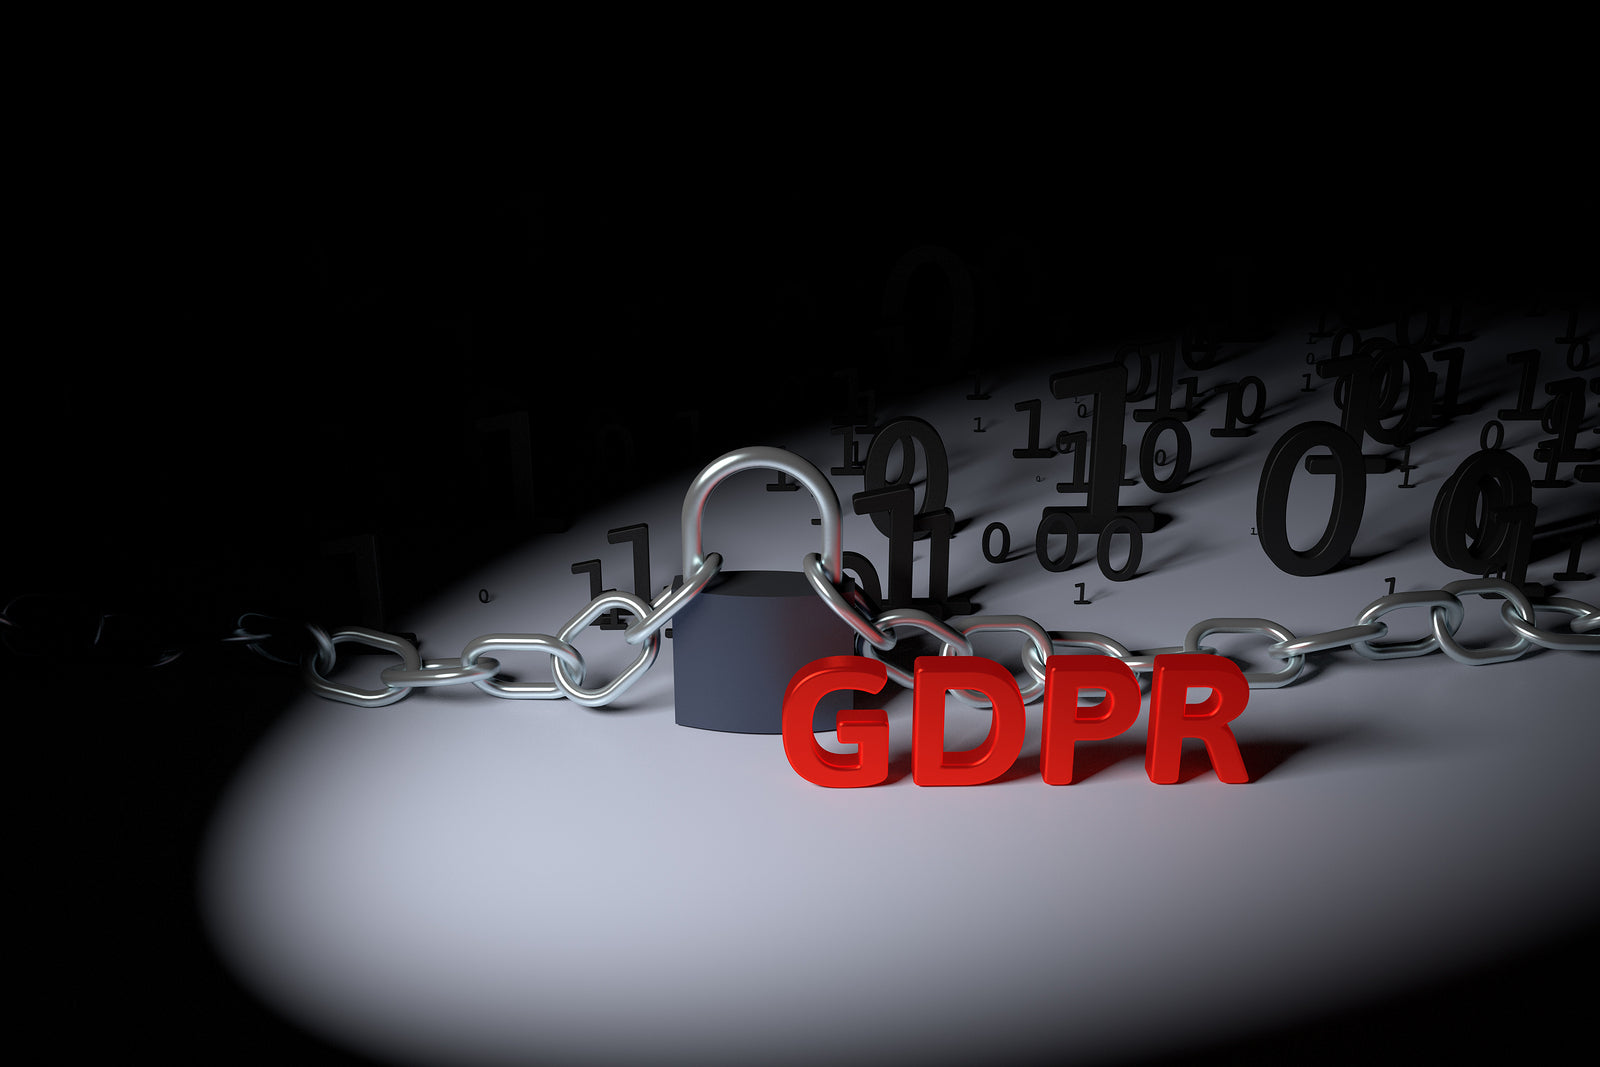 Less than half of employers GDPR-compliant - with just weeks to go